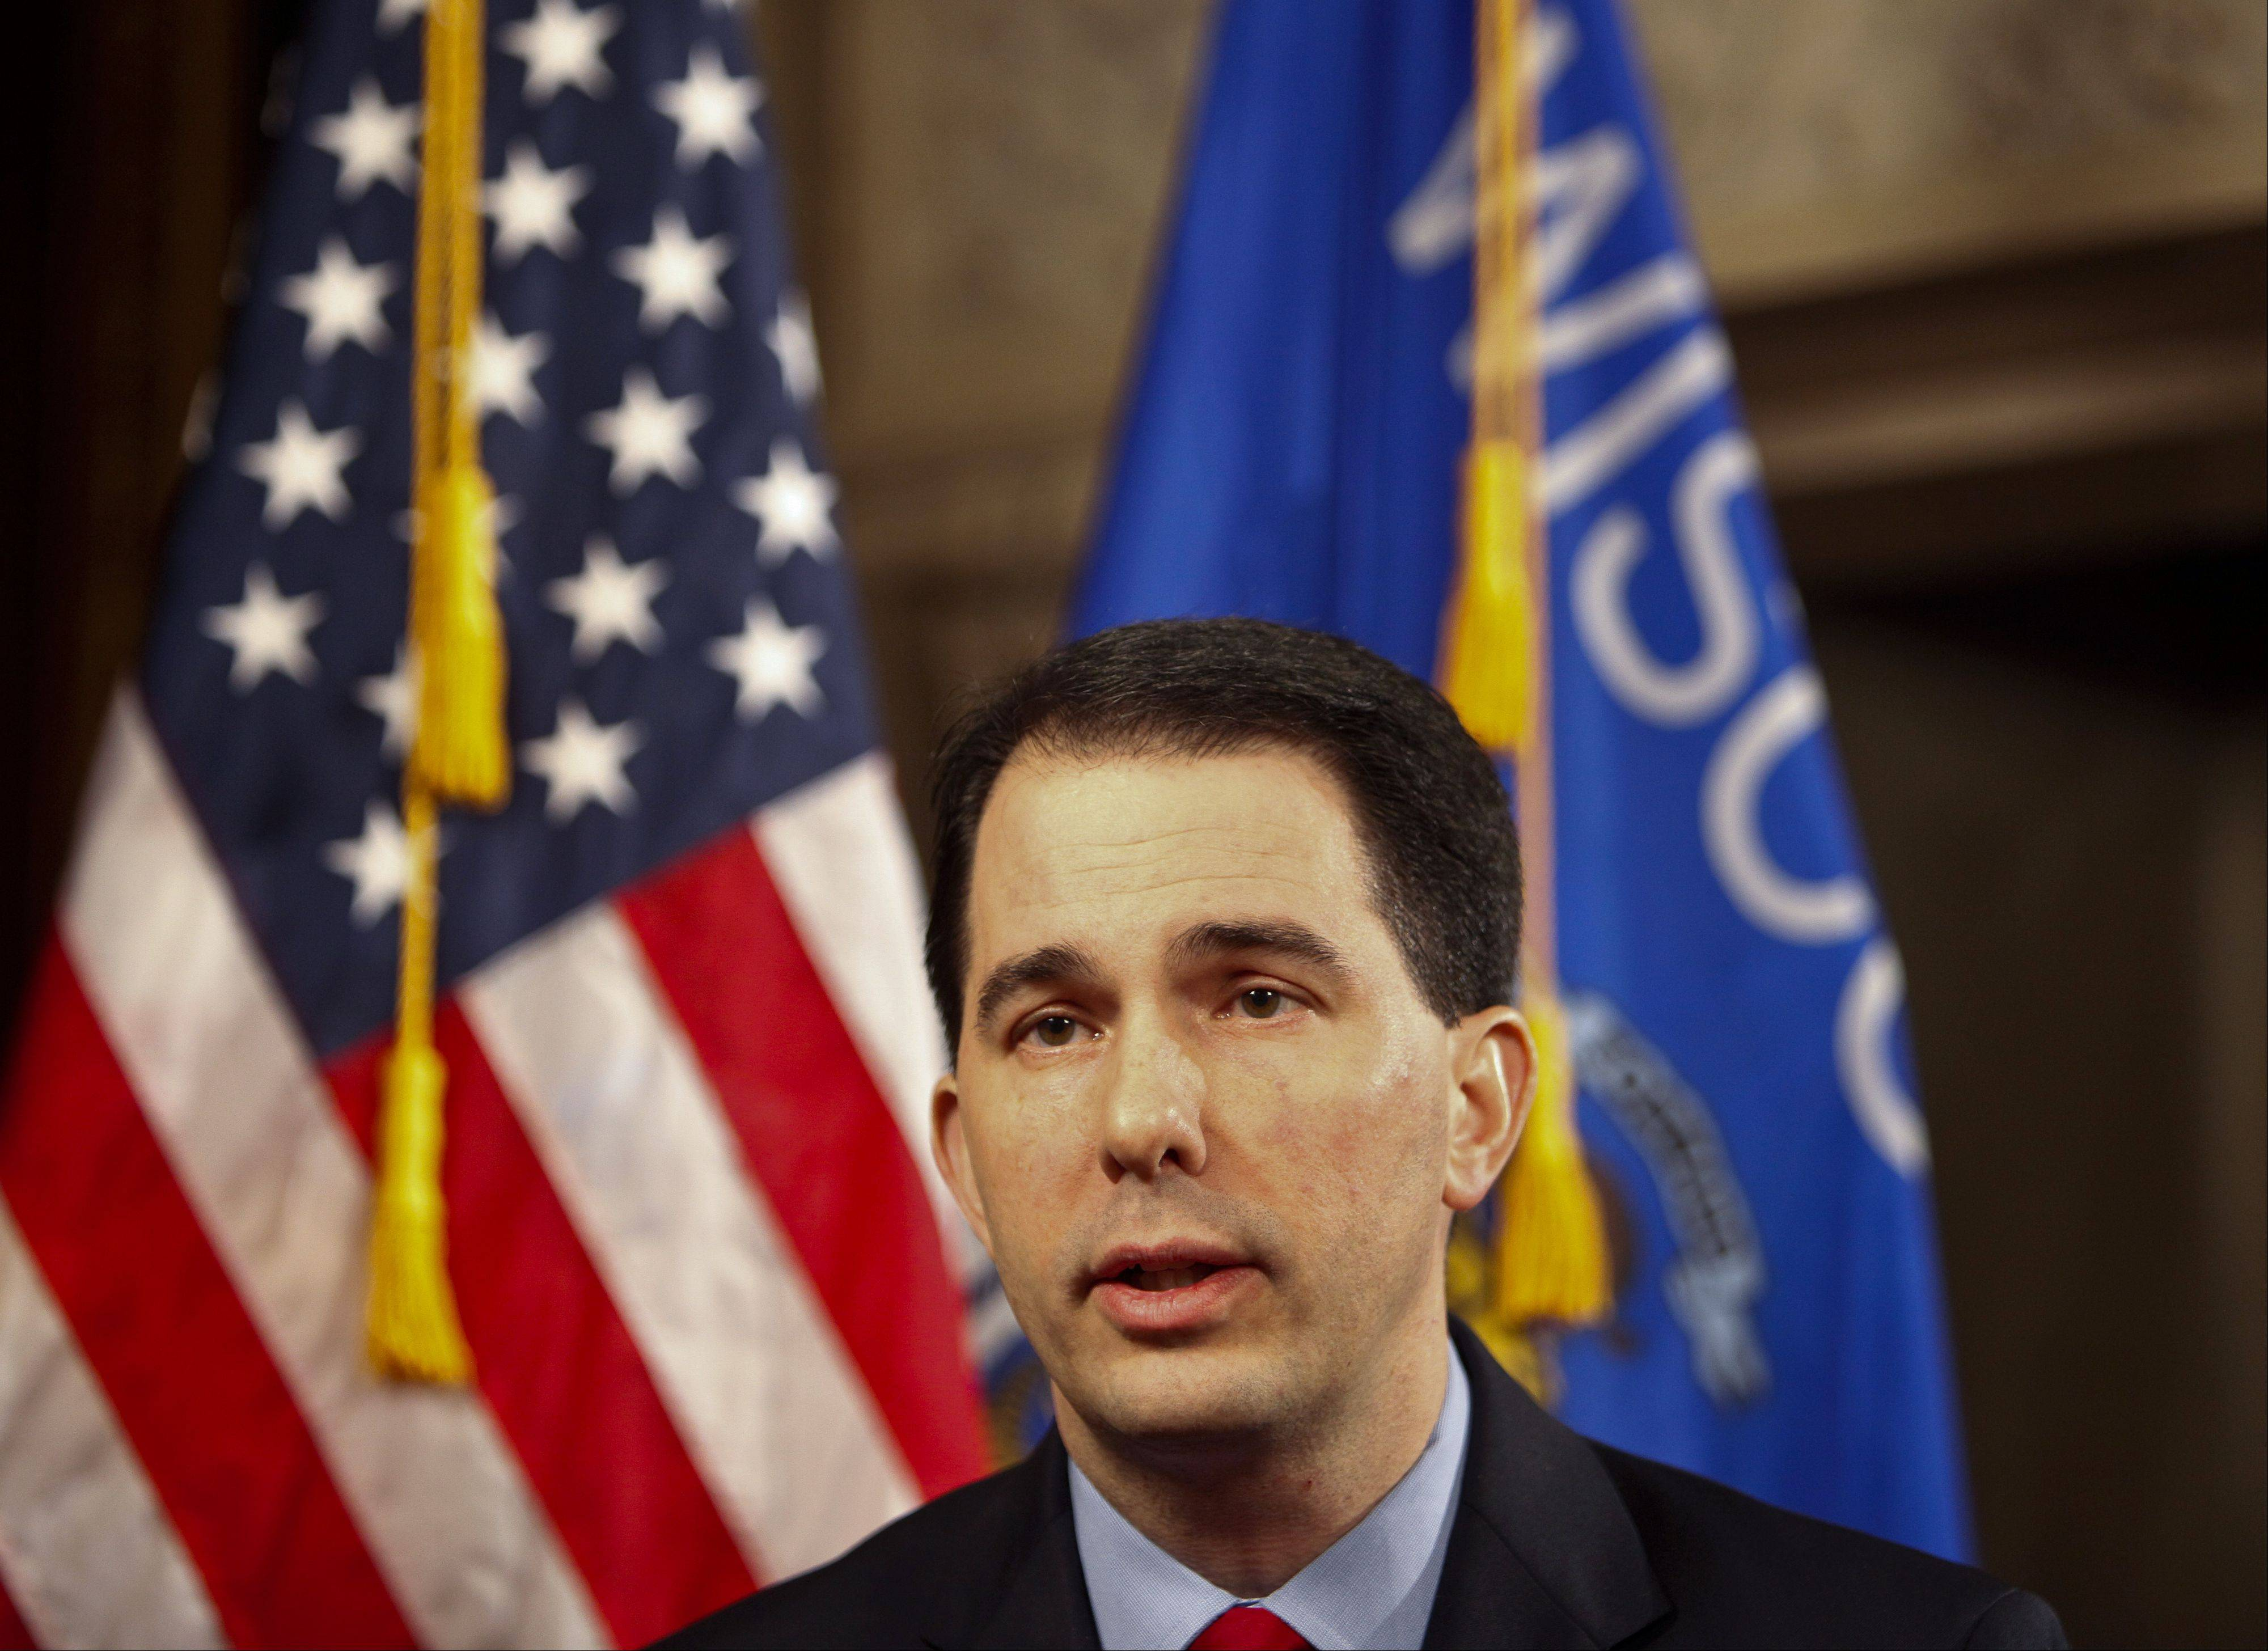 Wisconsin Gov. Scott Walker is praising fellow Wisconsin Republican Paul Ryan for the congressman�s role in broking a bipartisan budget bill that�s been blasted a by number of conservatives.